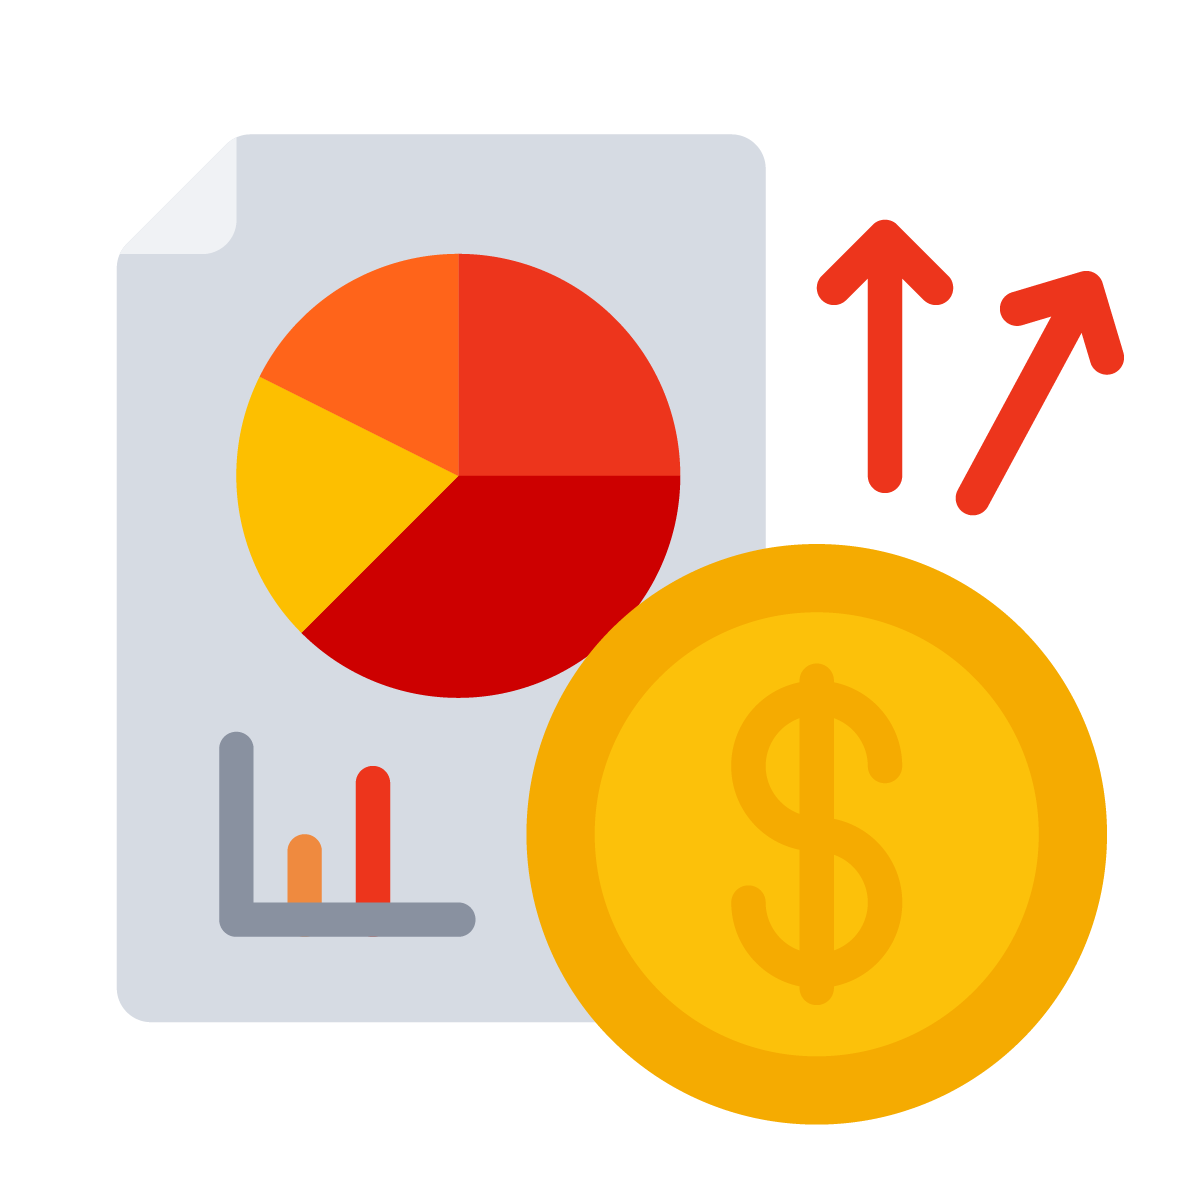 increasing costs tech finance industry